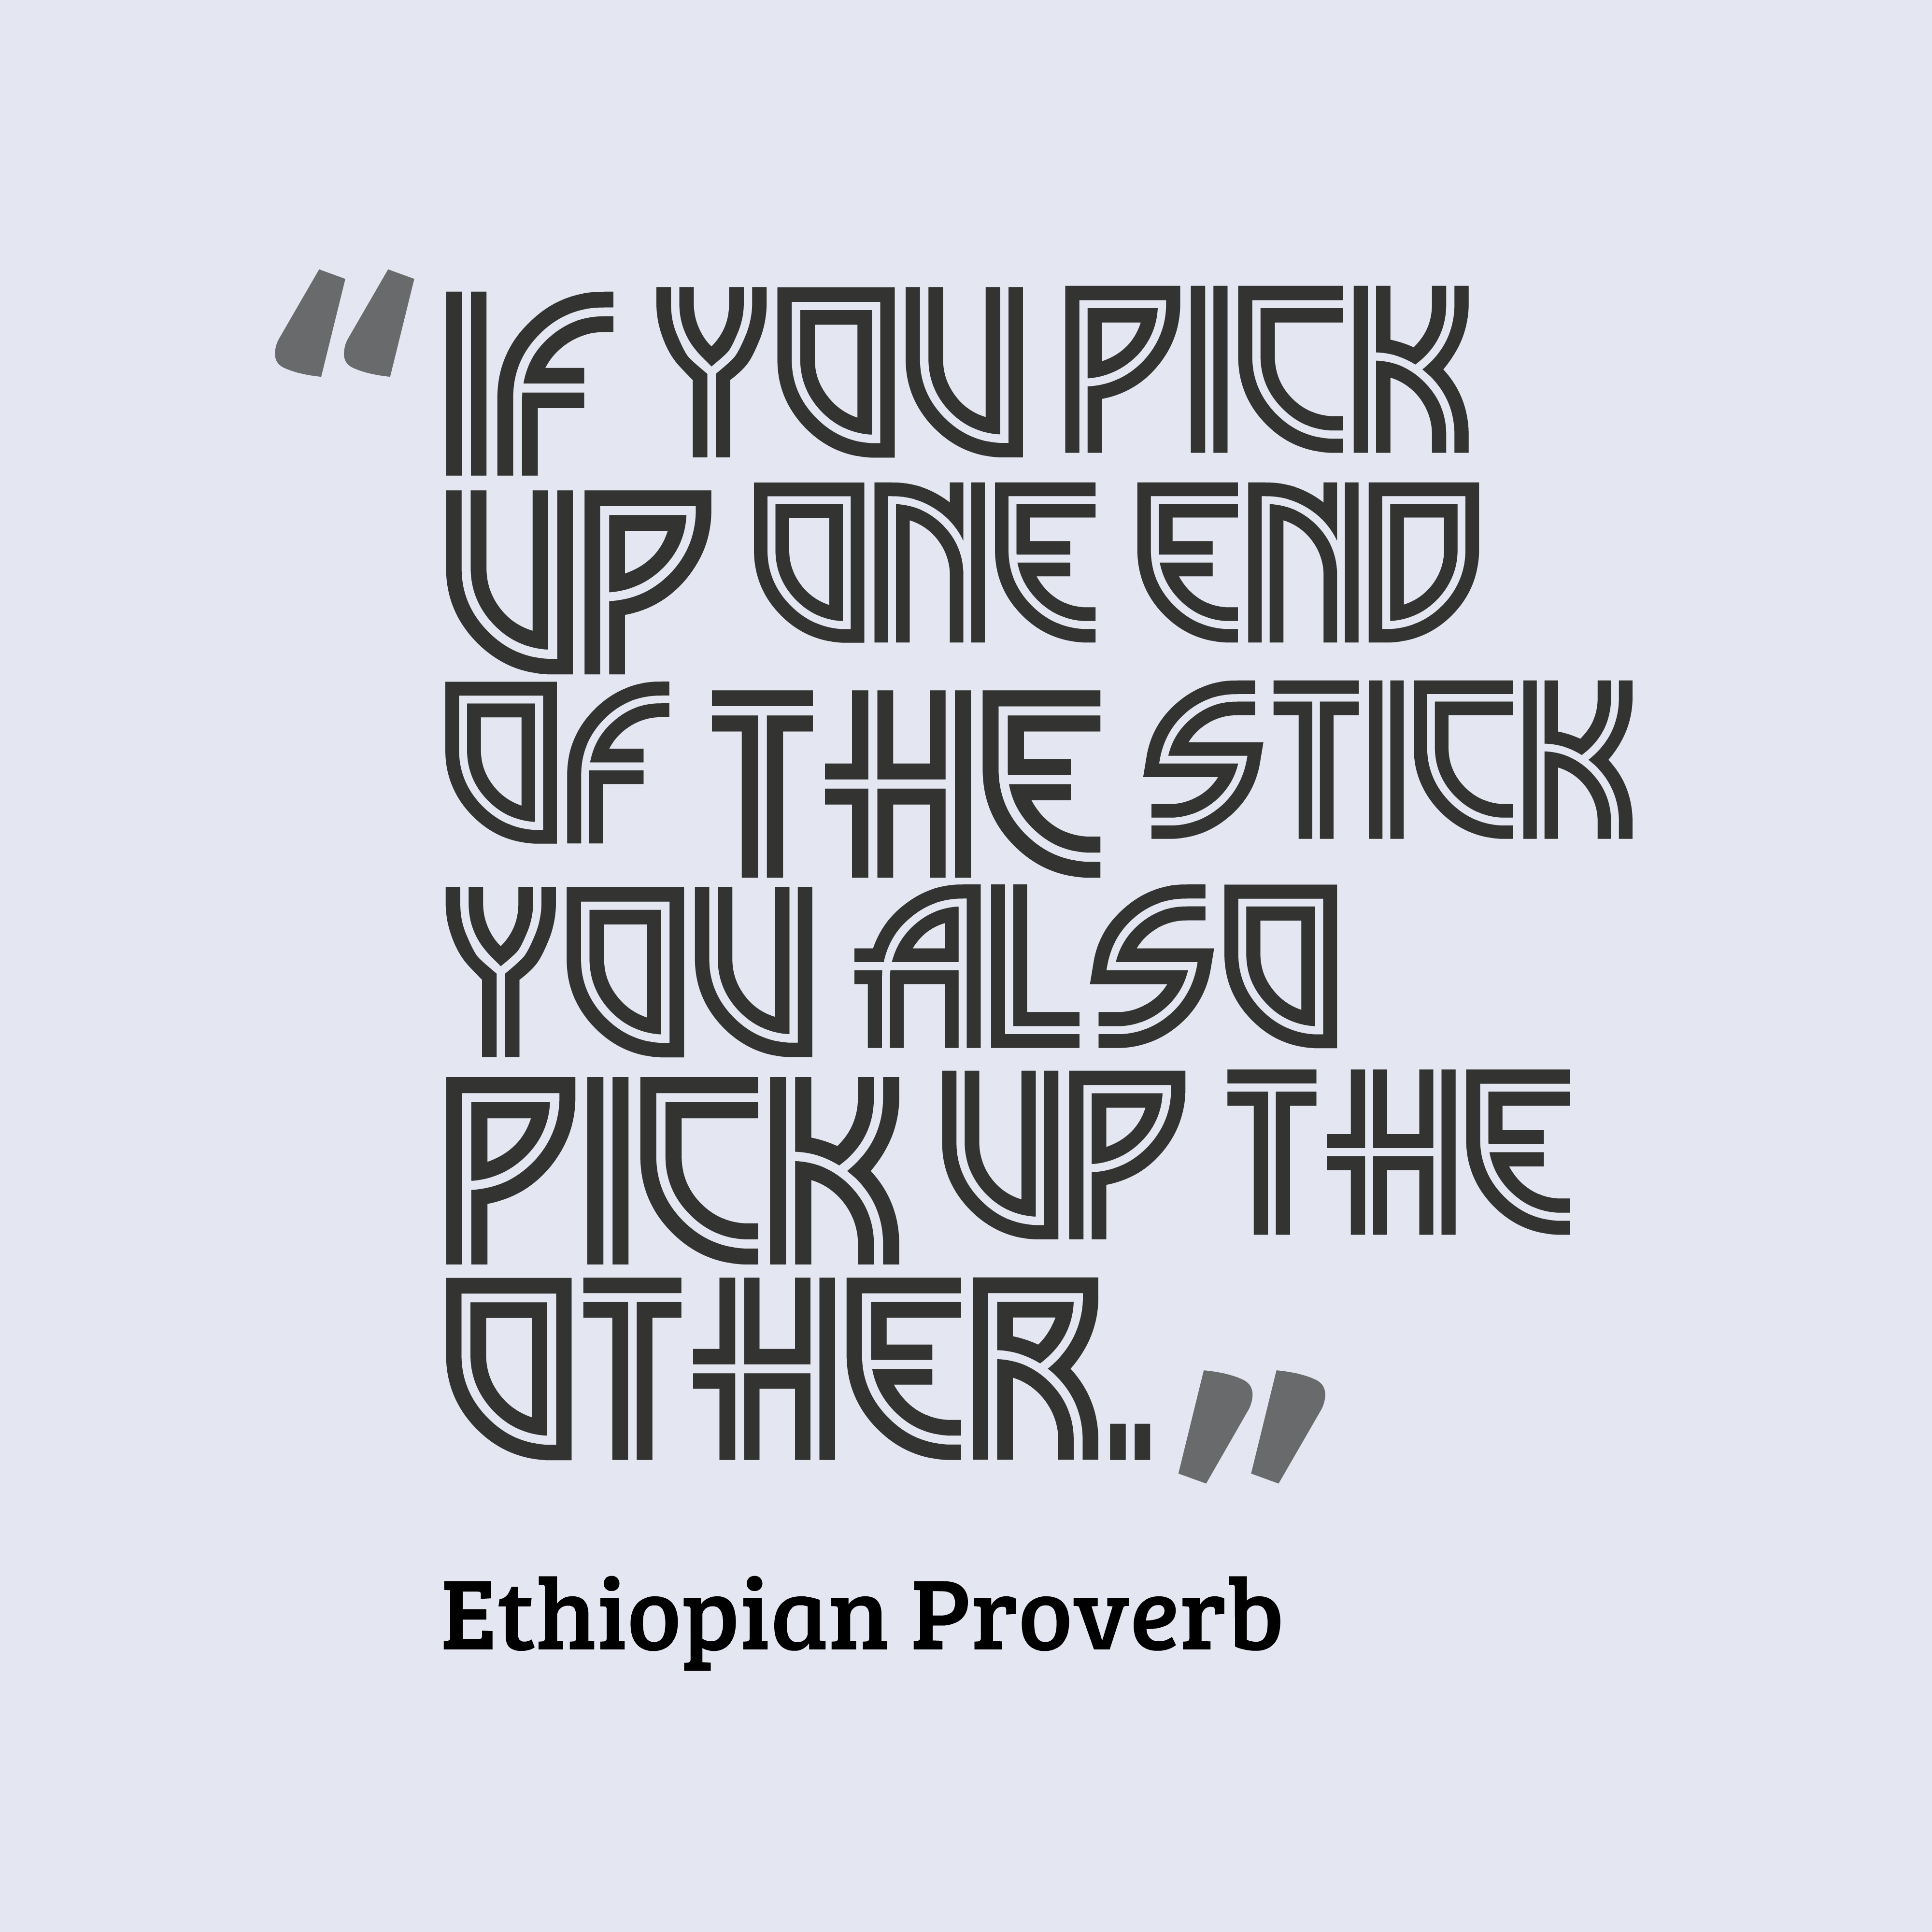 Quotes image of If you pick up one end of the stick you also pick up the other.